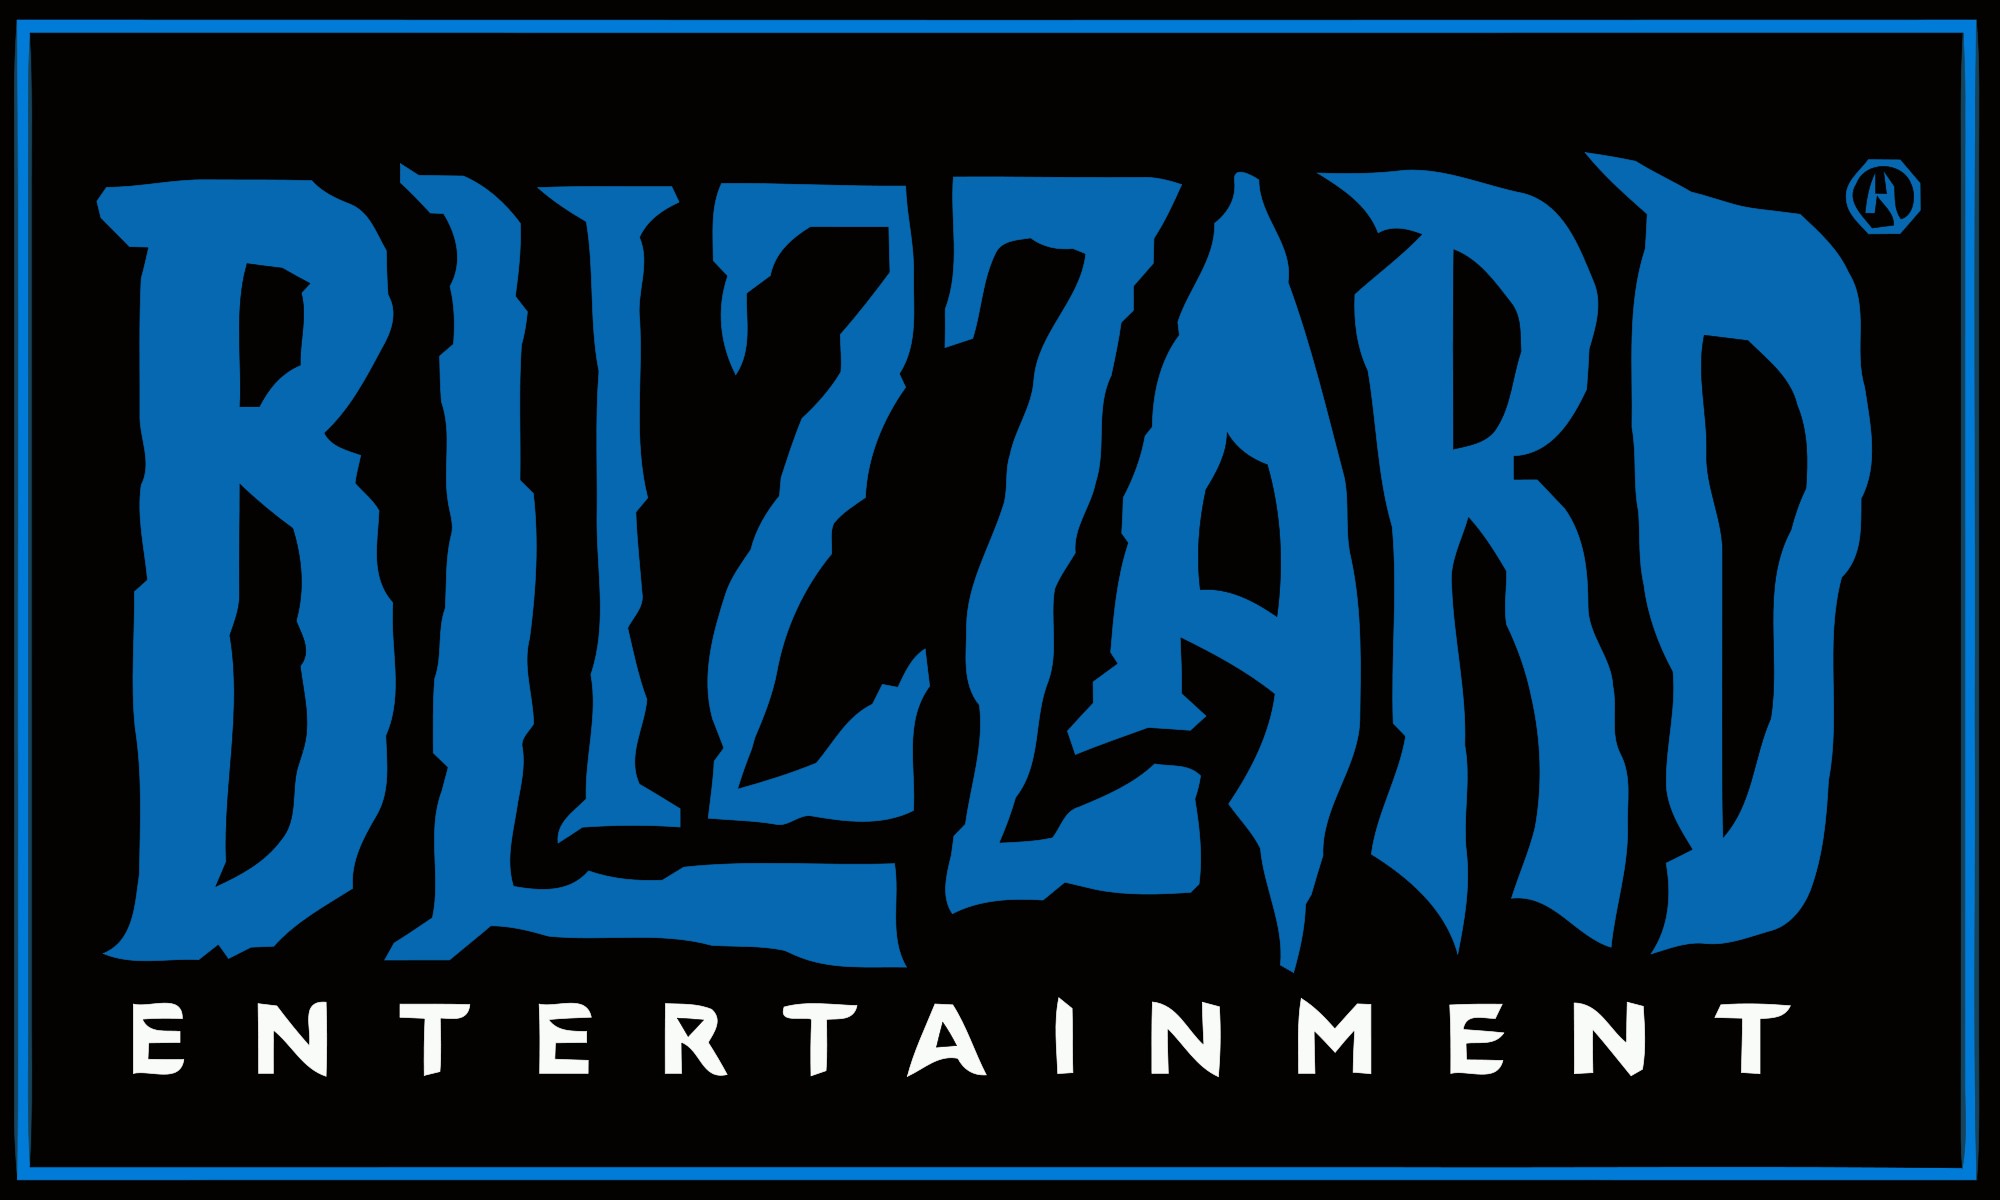 Blizzard All Starts renombrado como Heroes of the Storm [Vídeo]